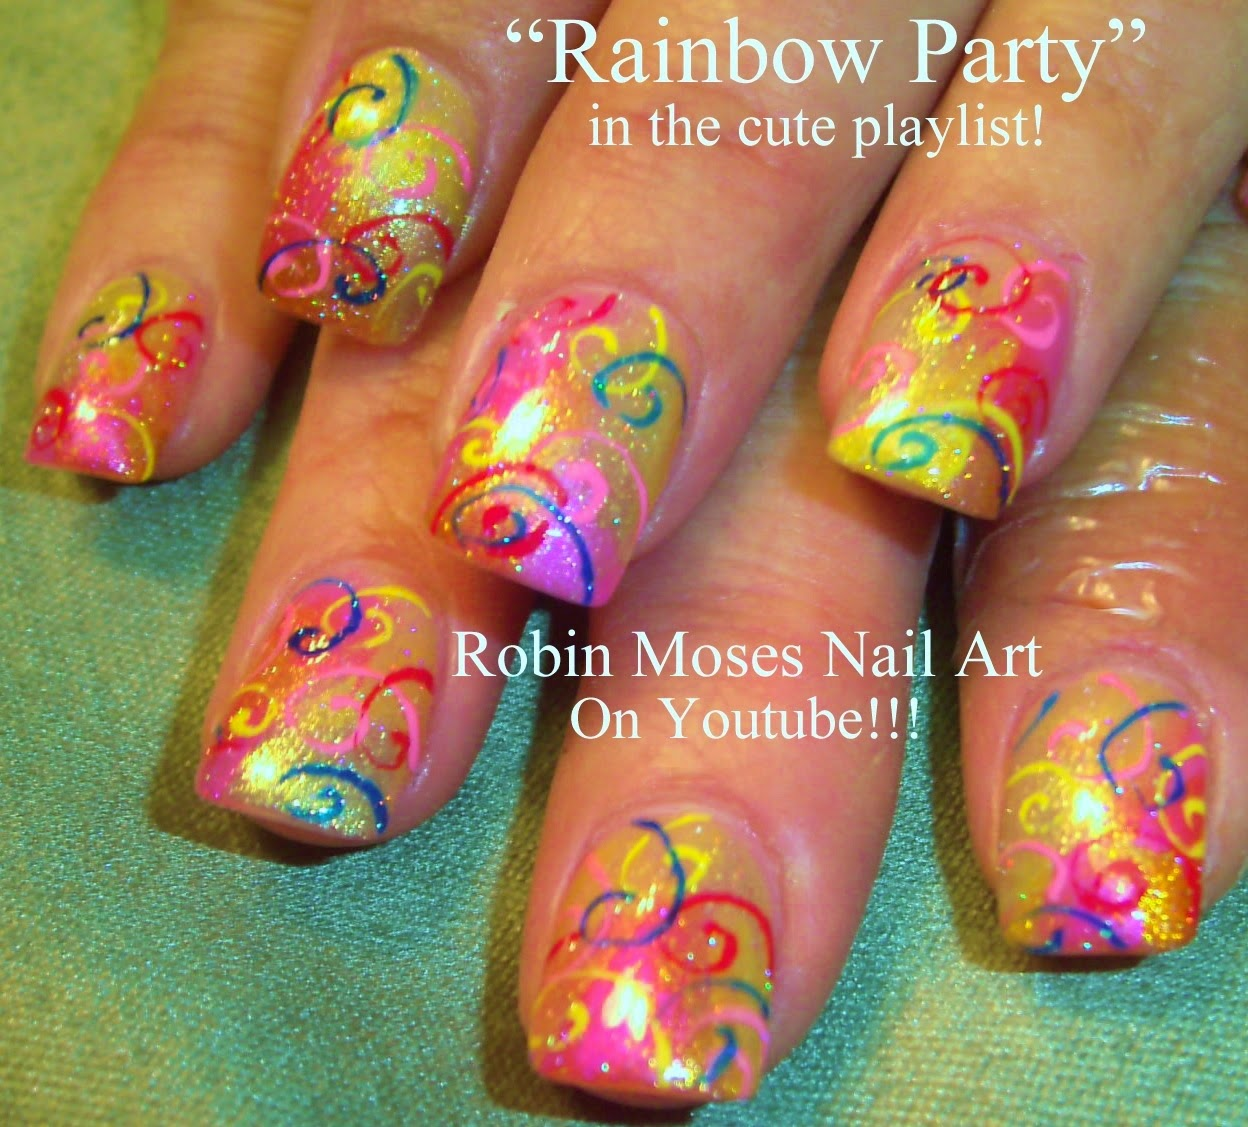 Robin moses nail art party nails spring nails nail art party nails spring nails nail art nail tutorial spring nail design birthday nail art birthday nails rainbow party nails prinsesfo Choice Image